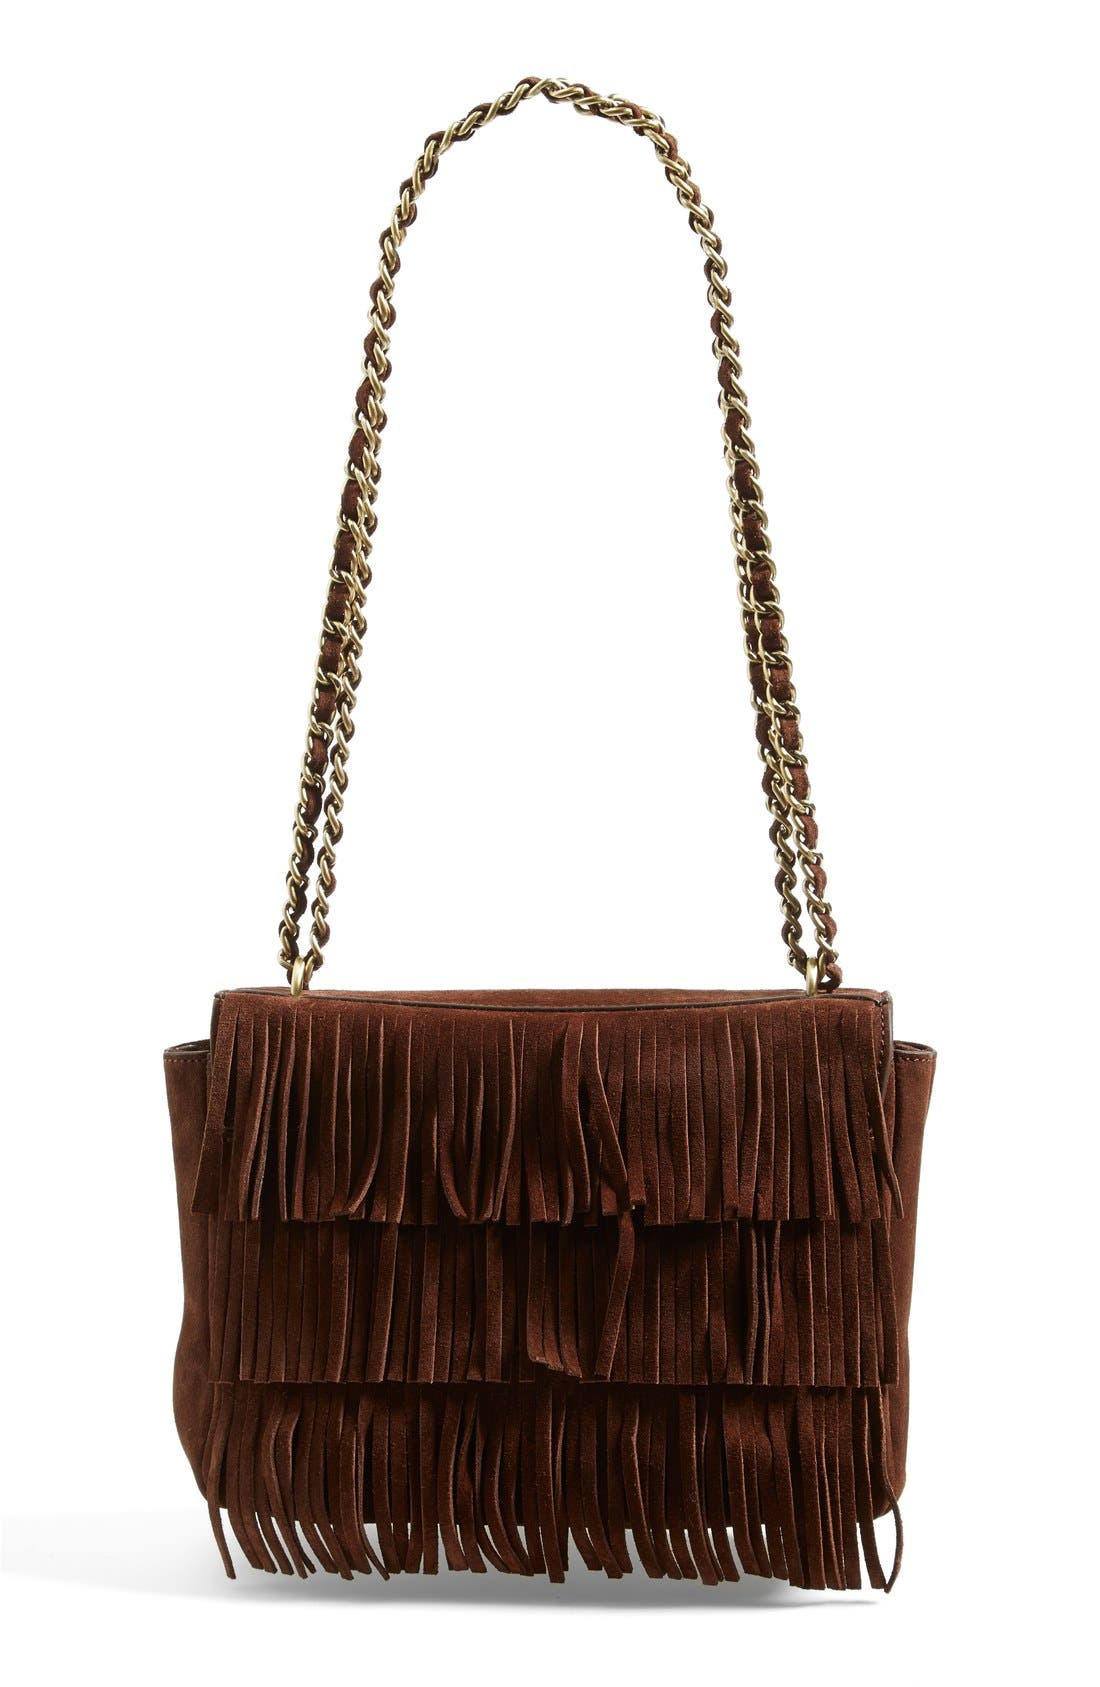 TORY BURCH,                             Fringe Shoulder Bag,                             Main thumbnail 1, color,                             201